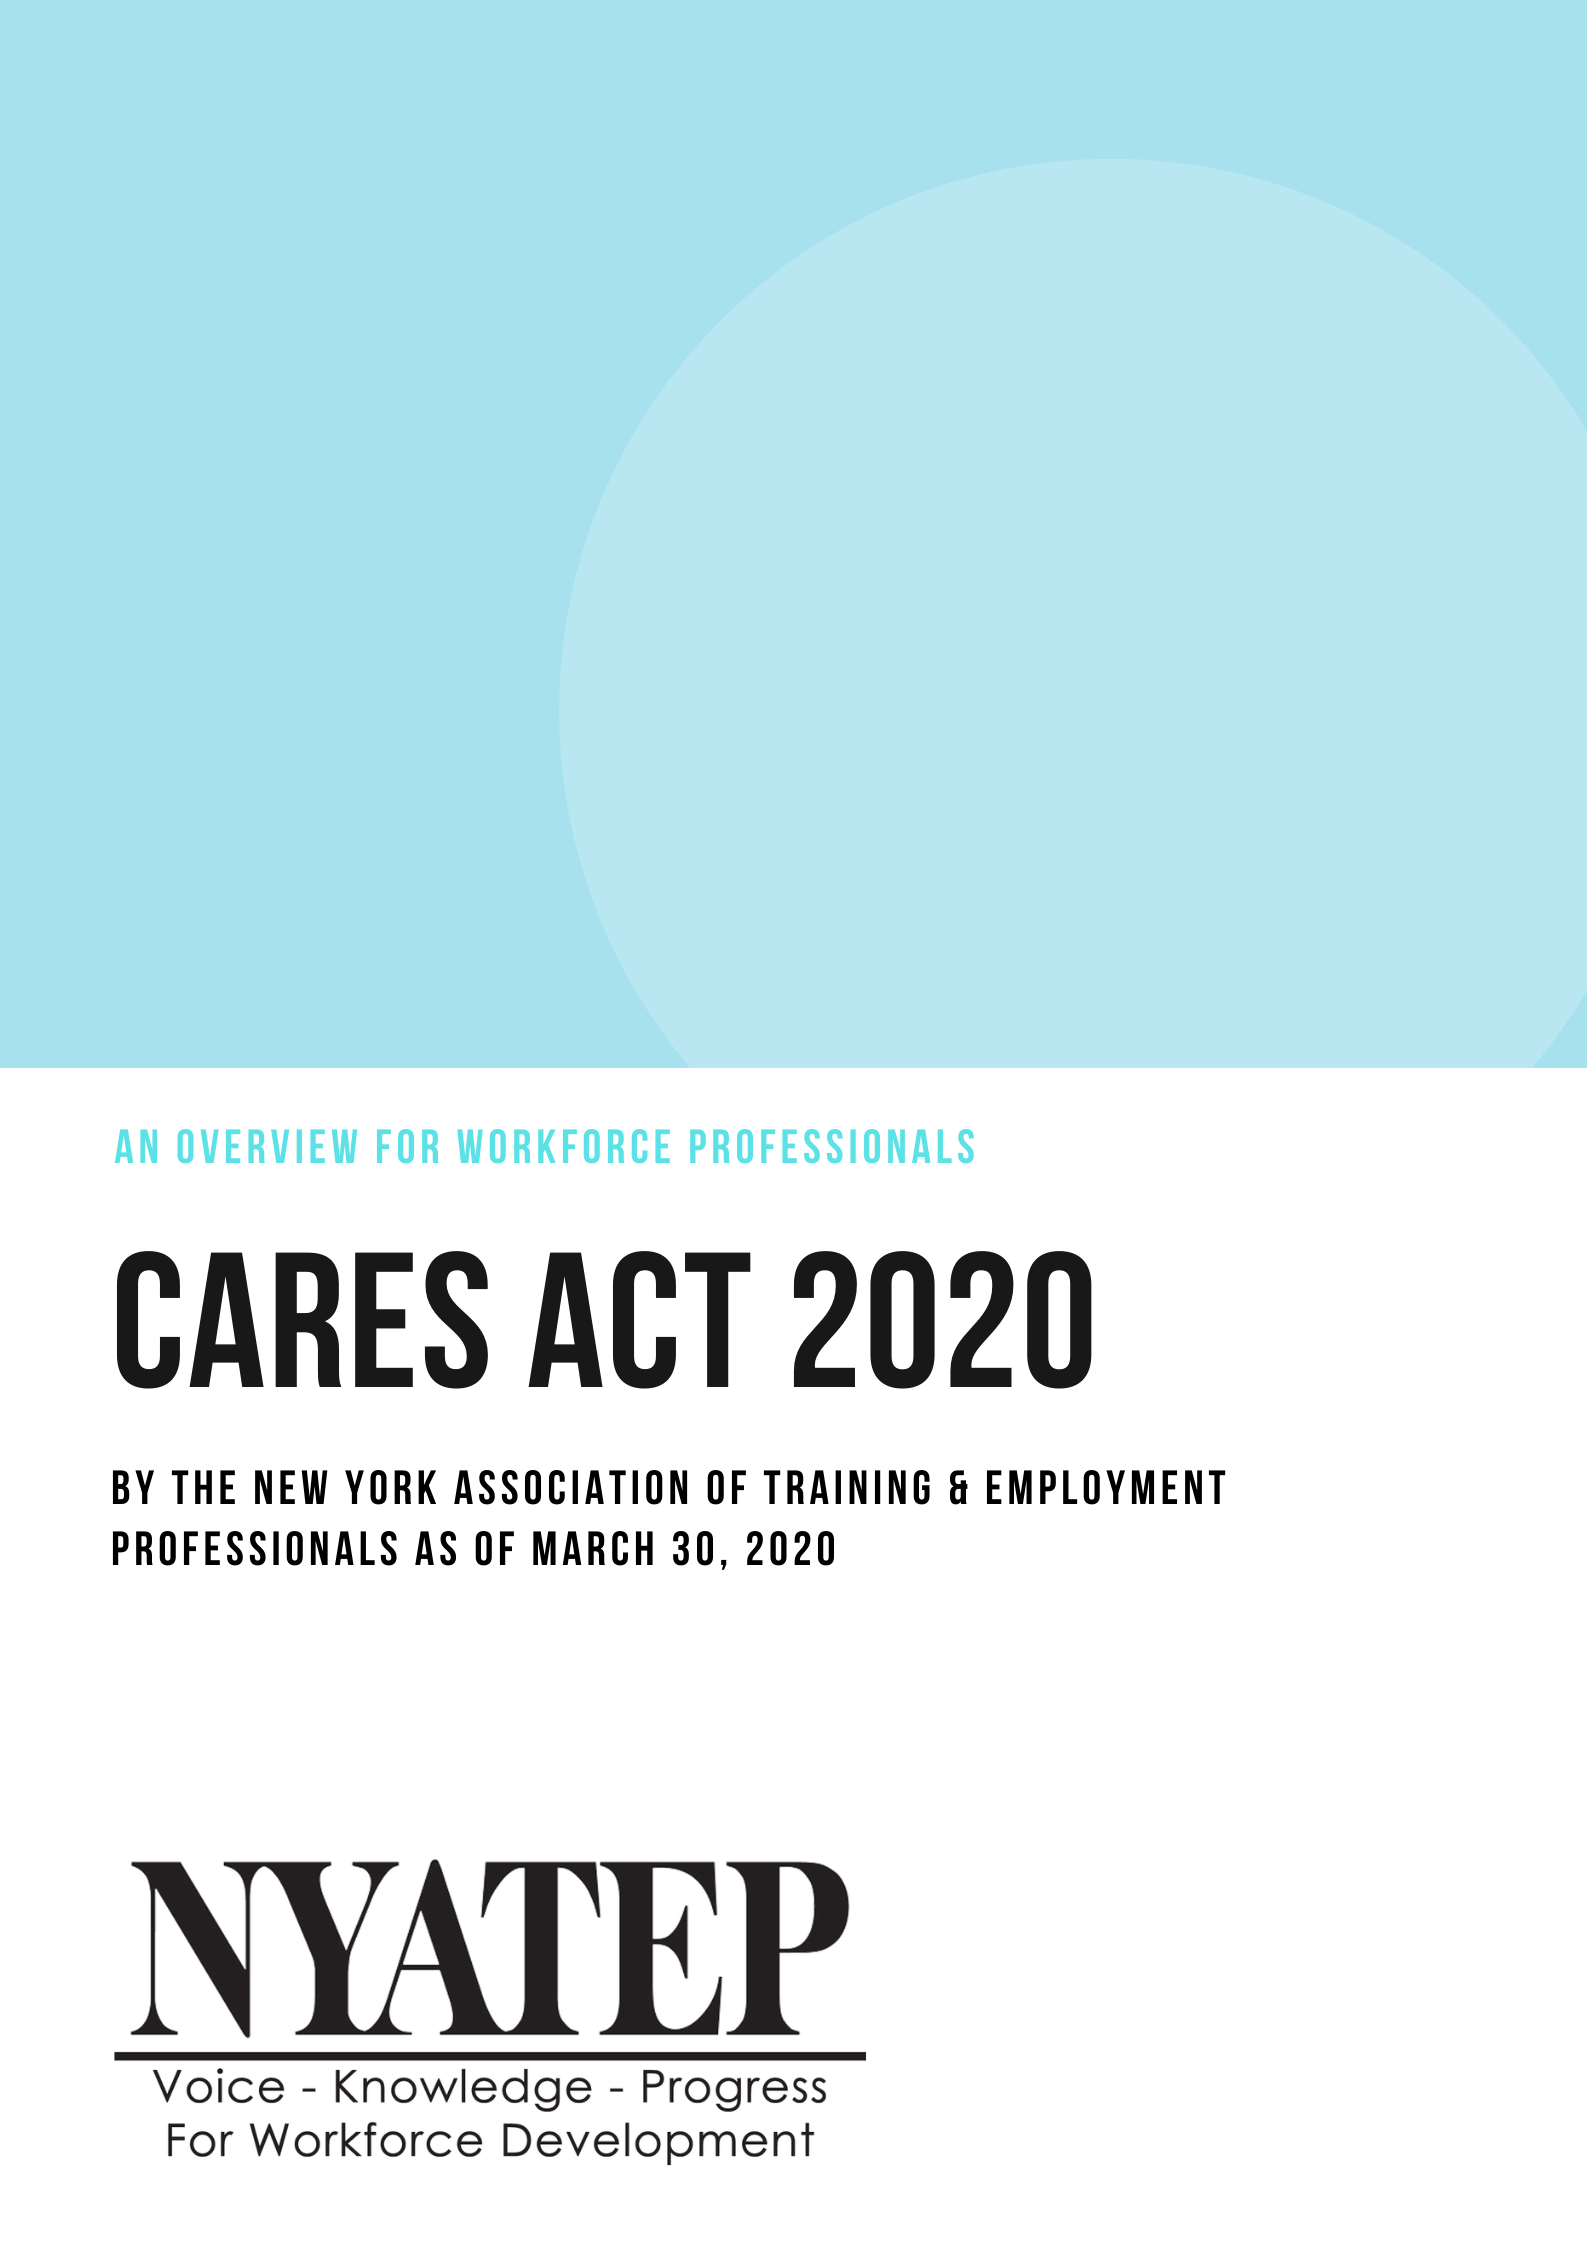 CARES Act Overview